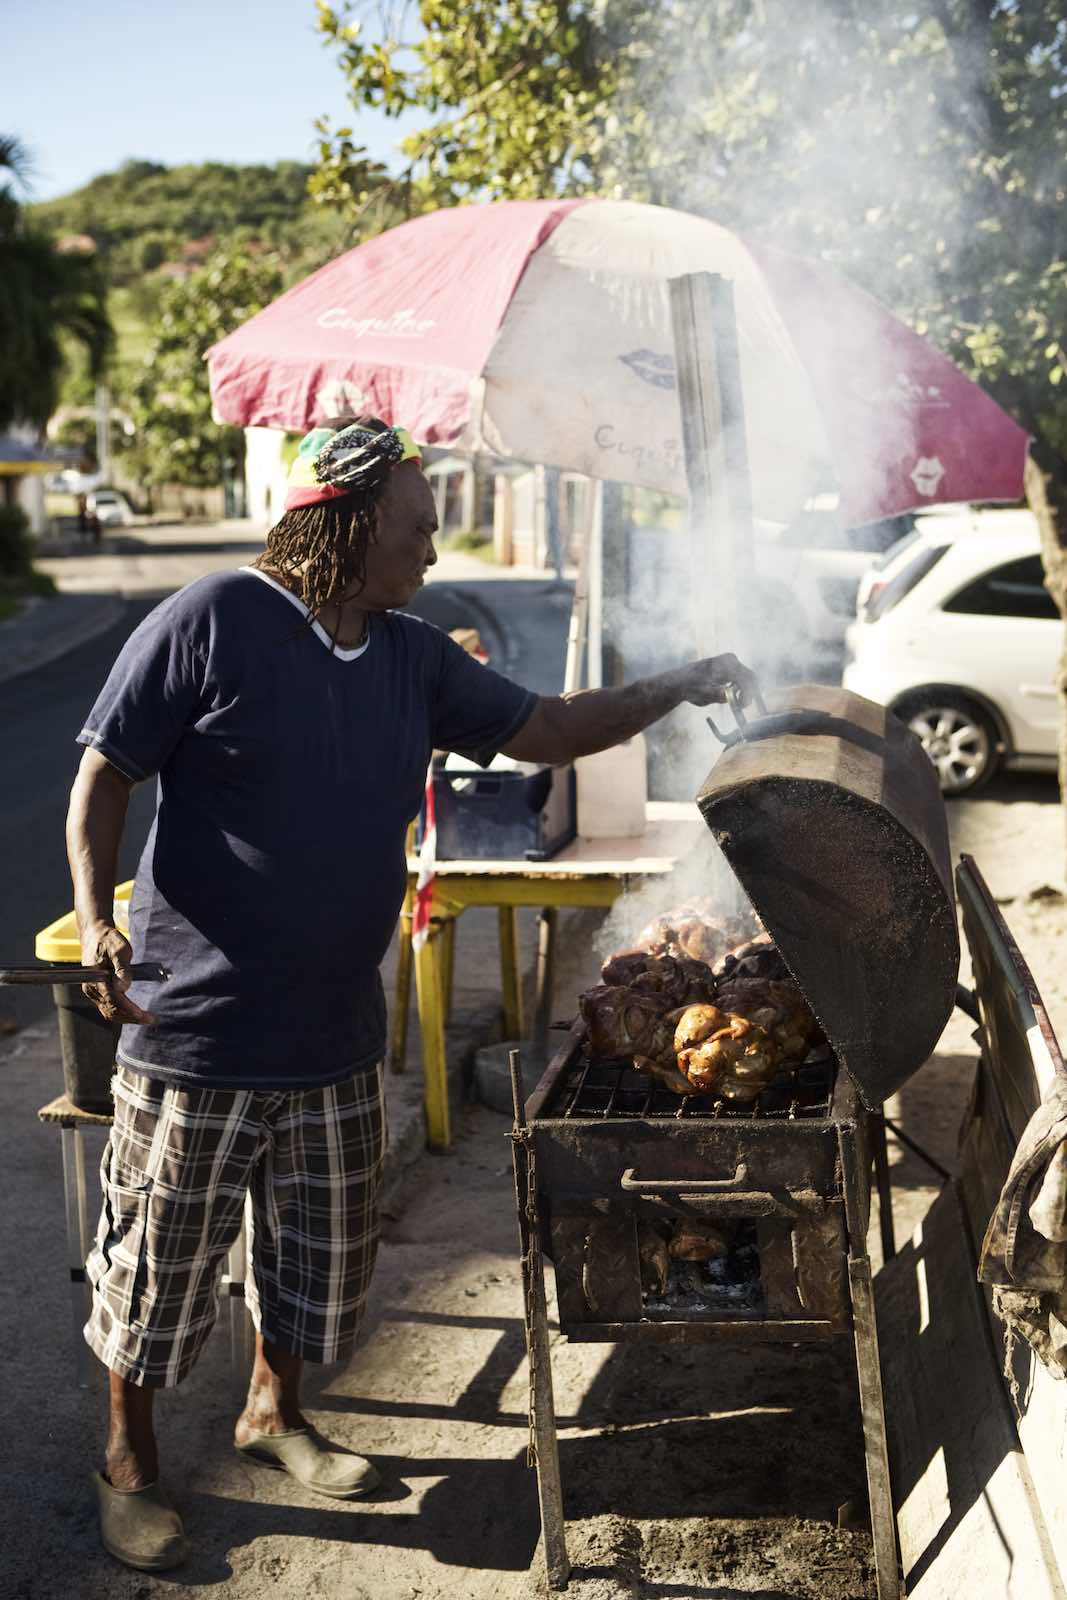 Jody Horton Photography - Man grilling chickens on the street in the bright sunlight.